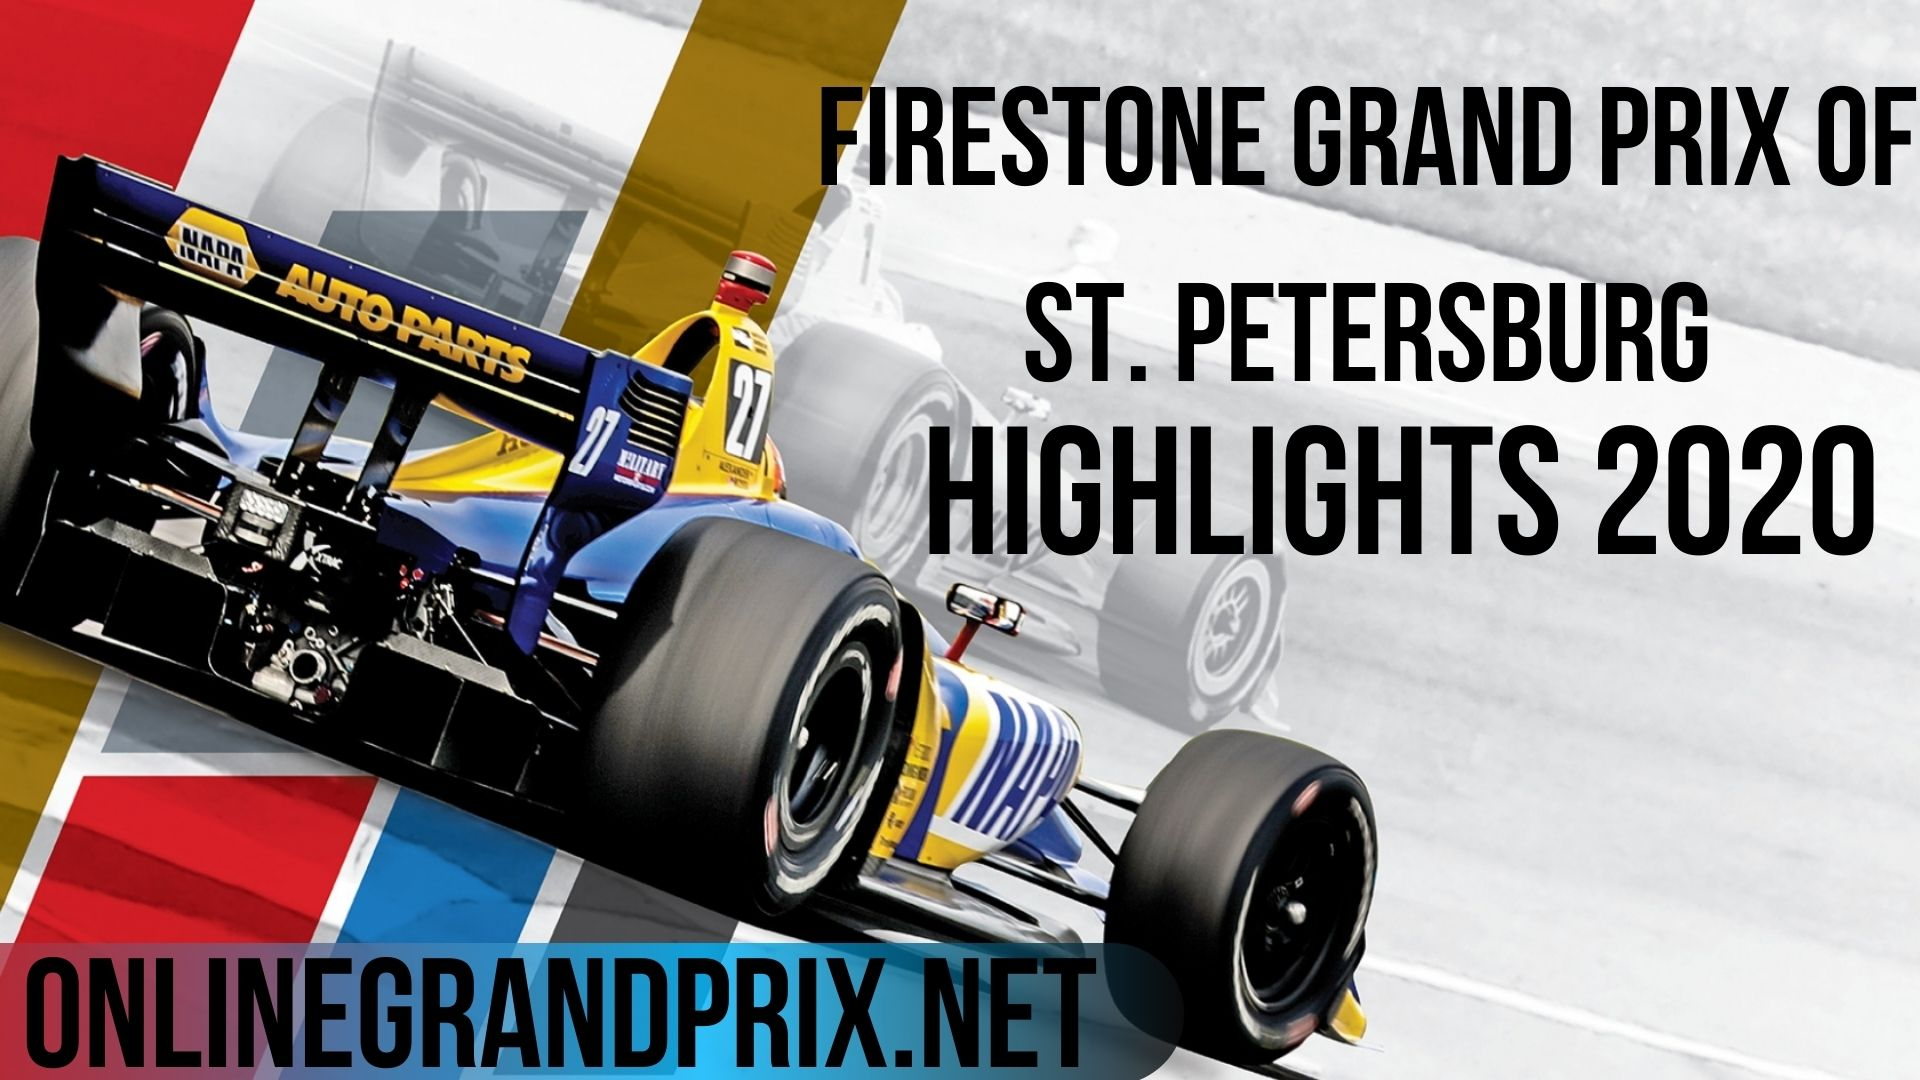 Firestone Grand Prix Of St. Petersburg Highlights INDYCAR 2020